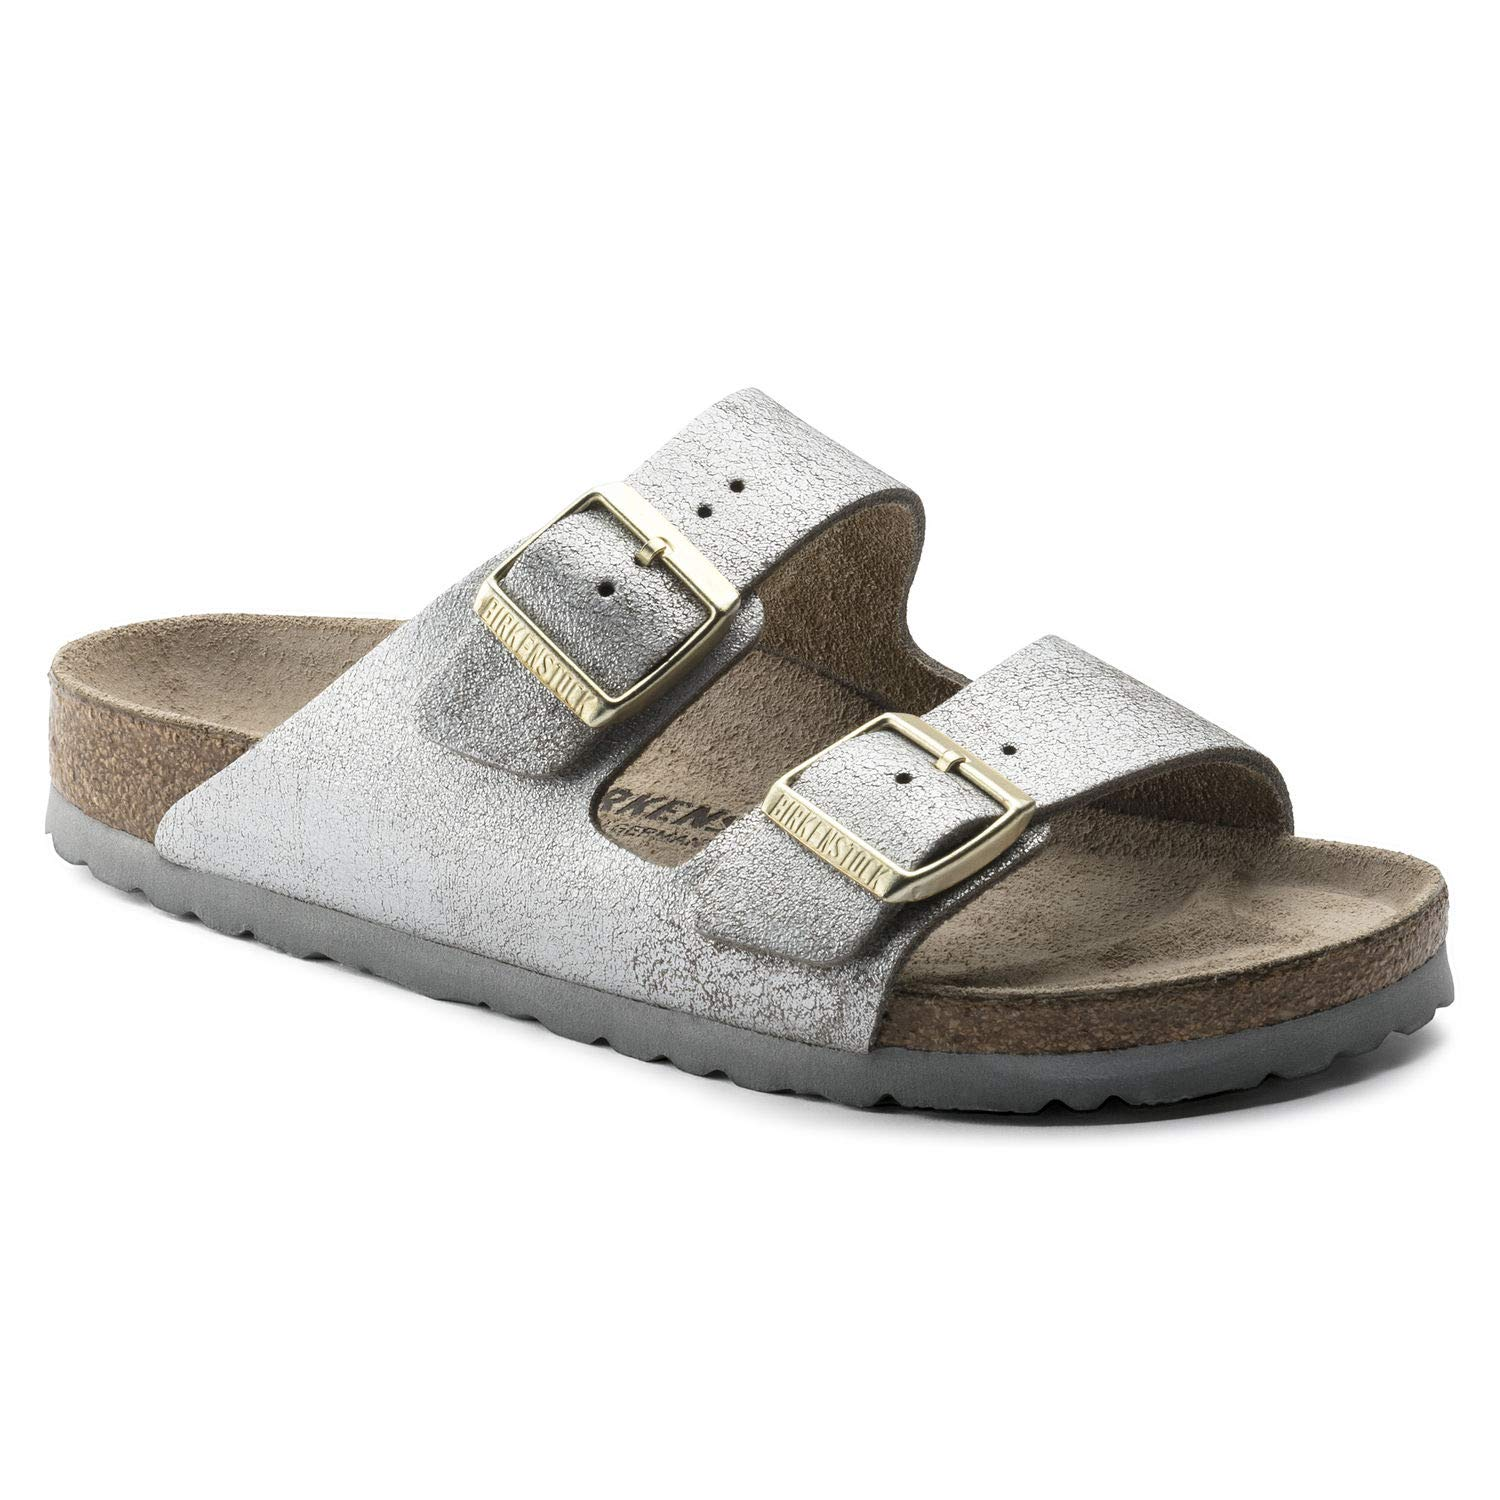 Birkenstock Women's Arizona Sandal Washed Metallic Blue Leather Size 41 N EU